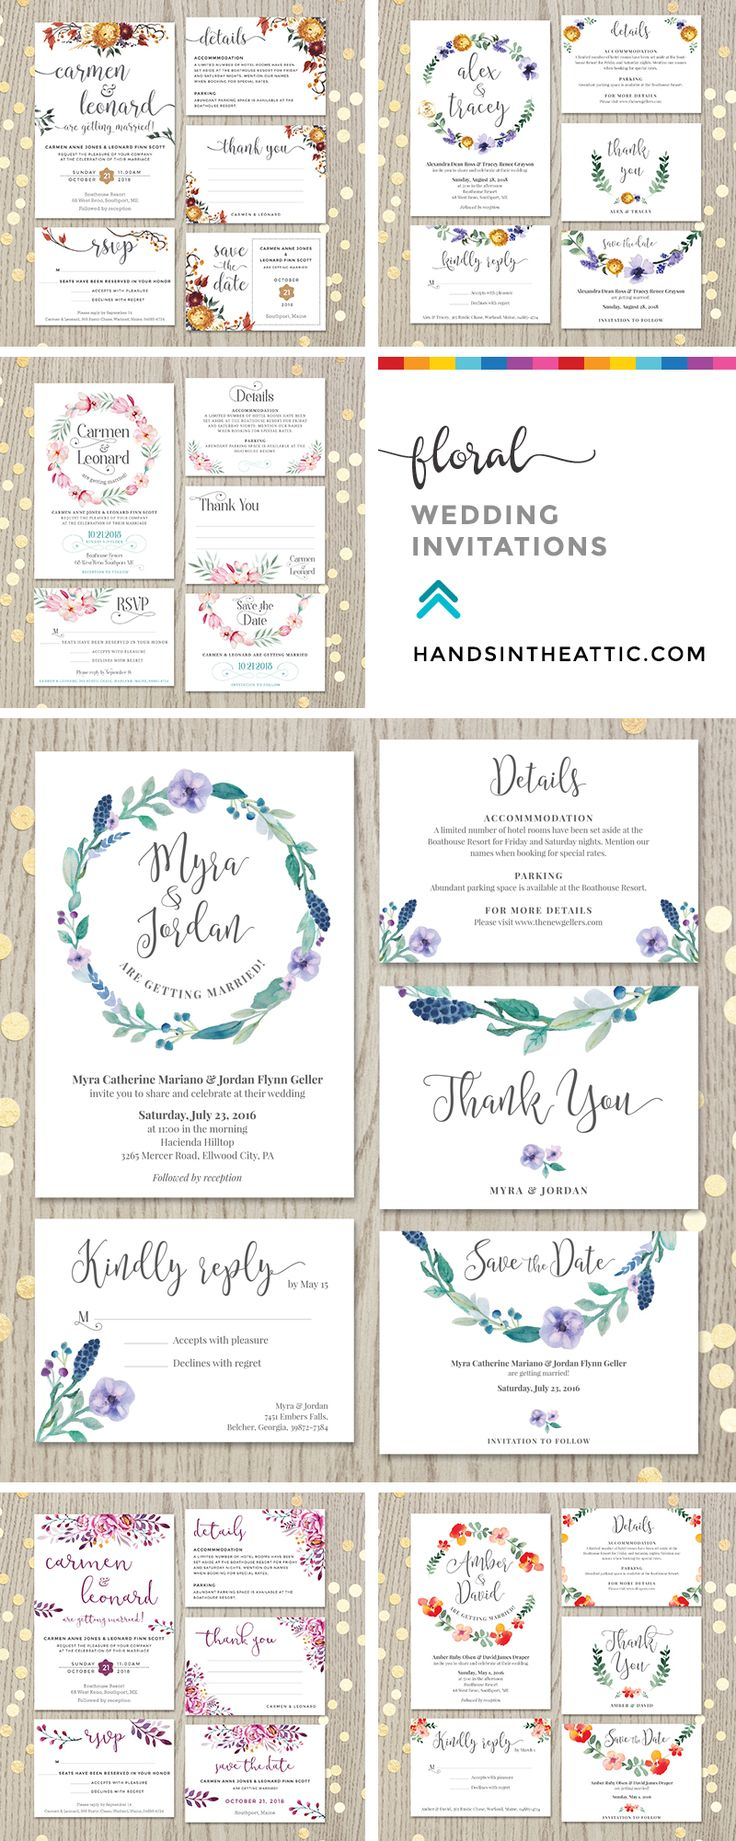 83 best Wedding Invitations images on Pinterest | My etsy shop ...